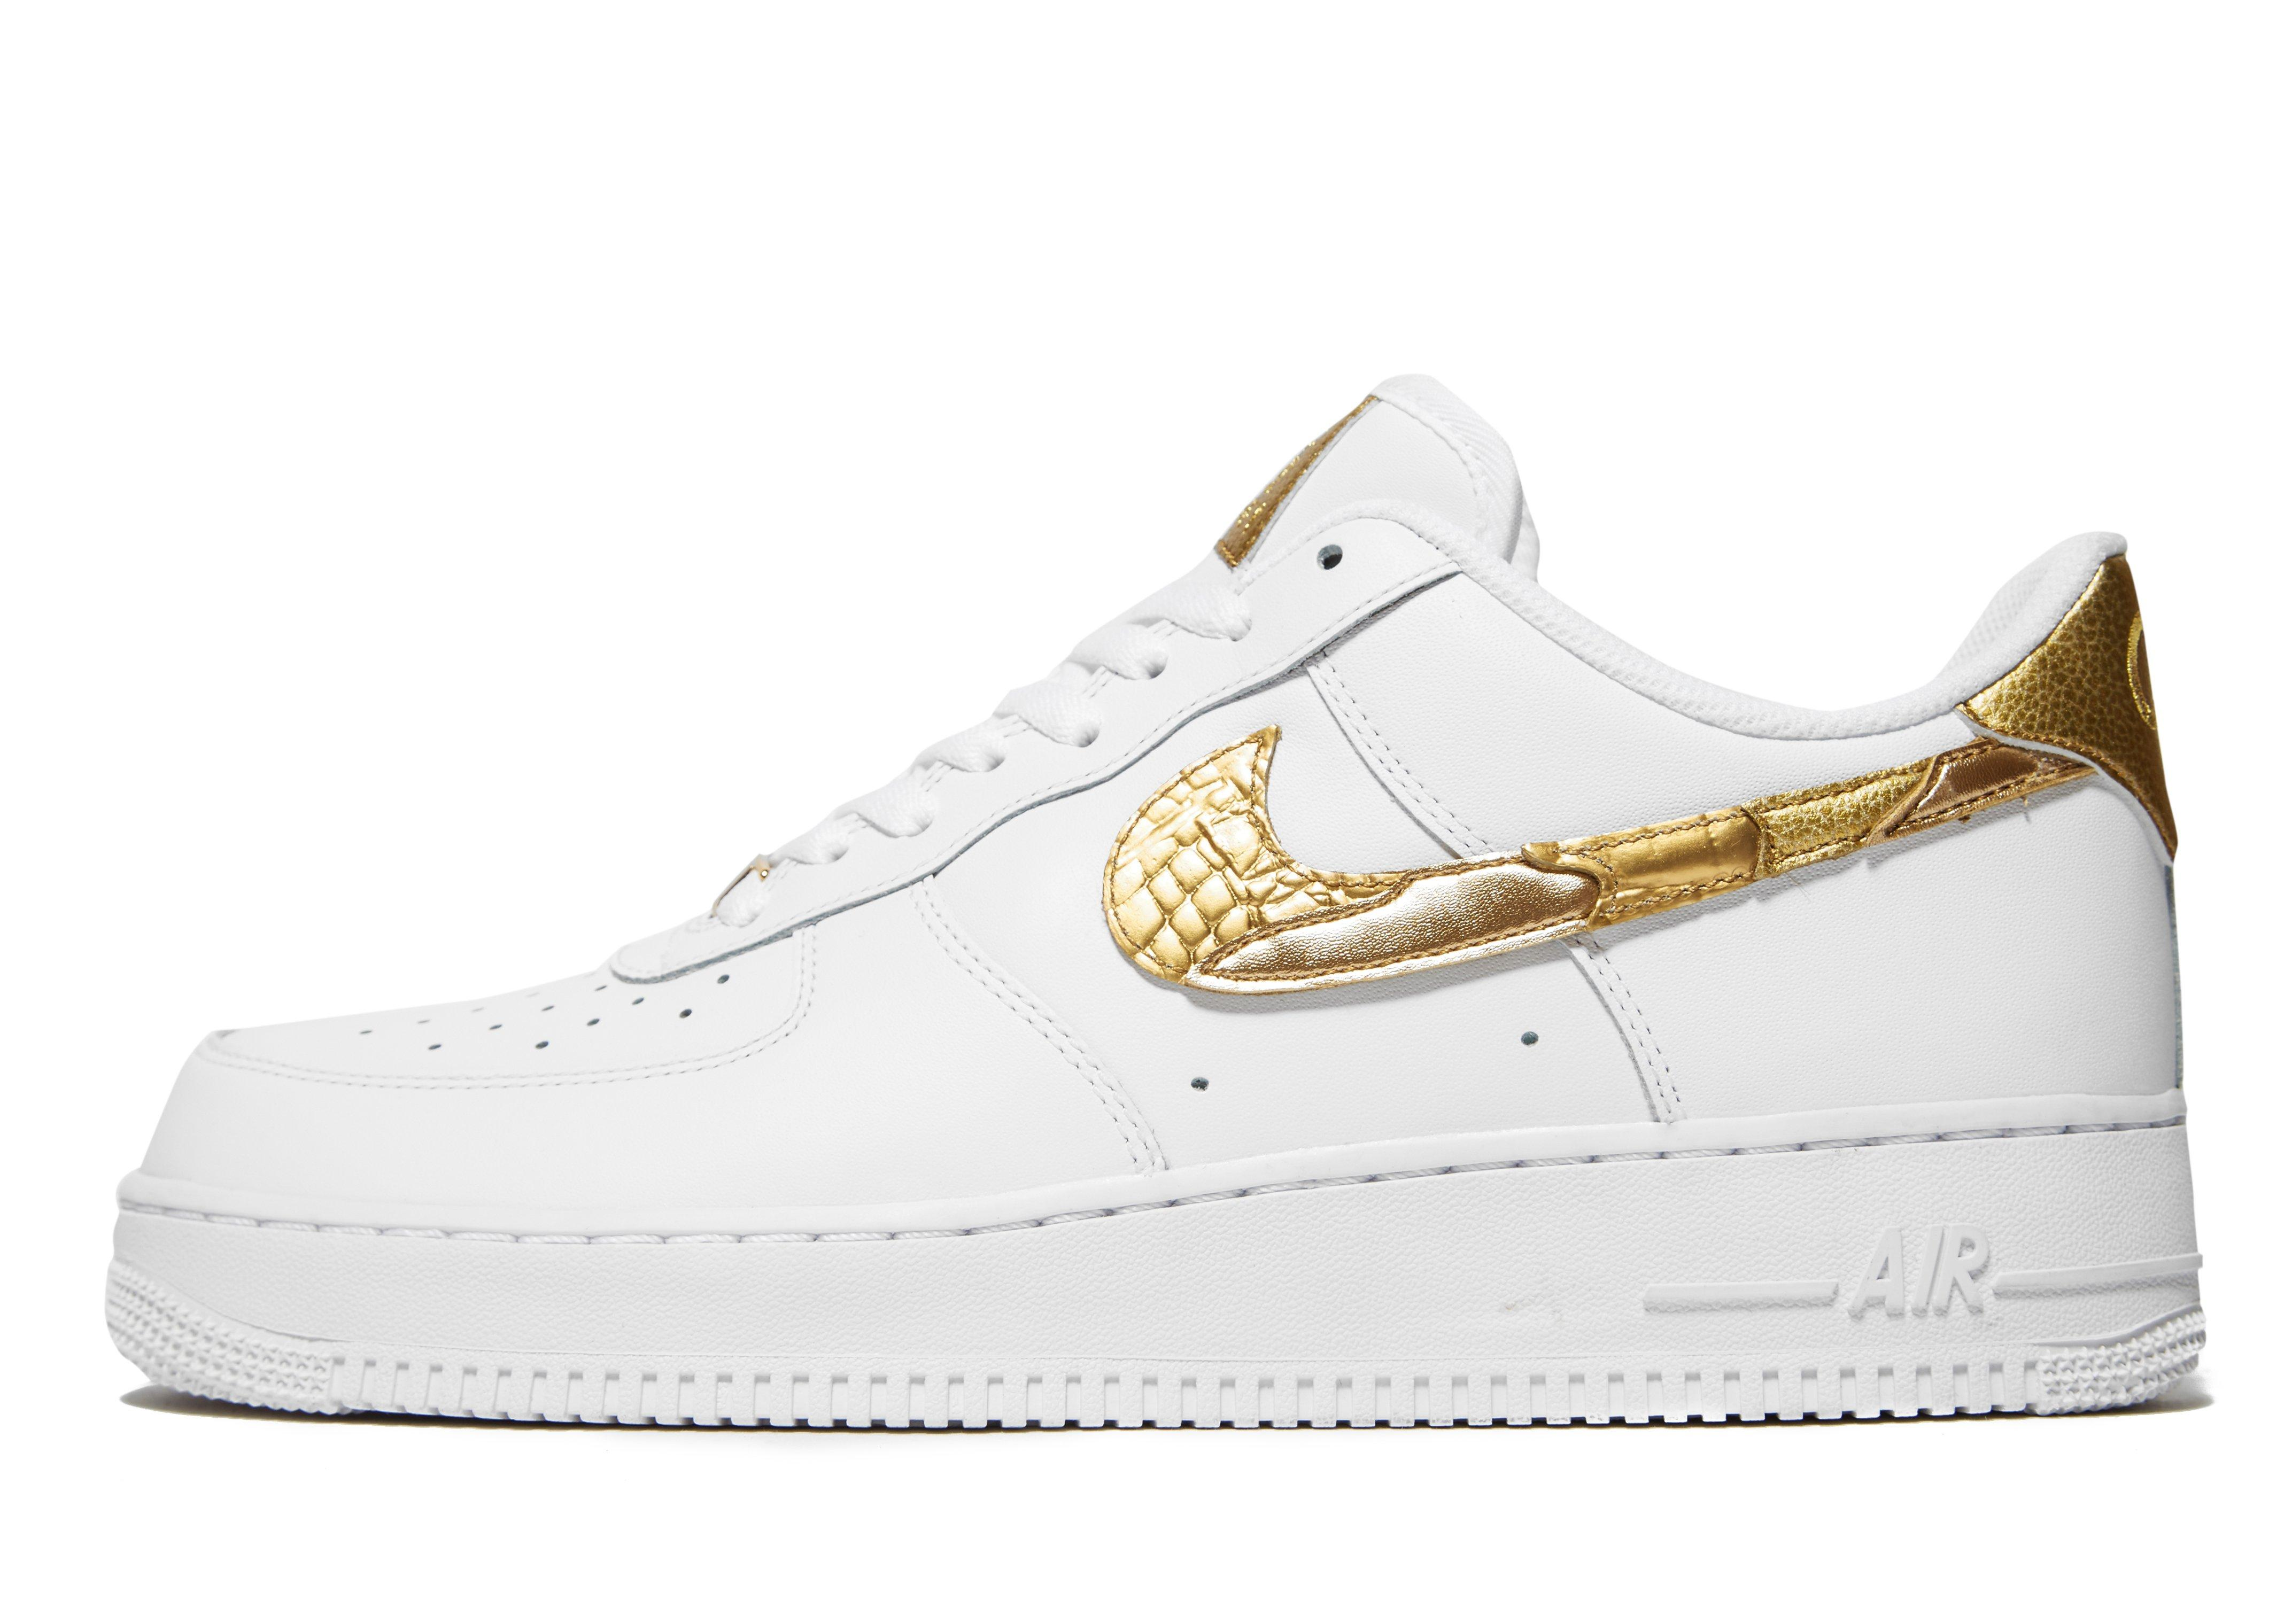 onde comprar nike air force 1 em portugal no porto